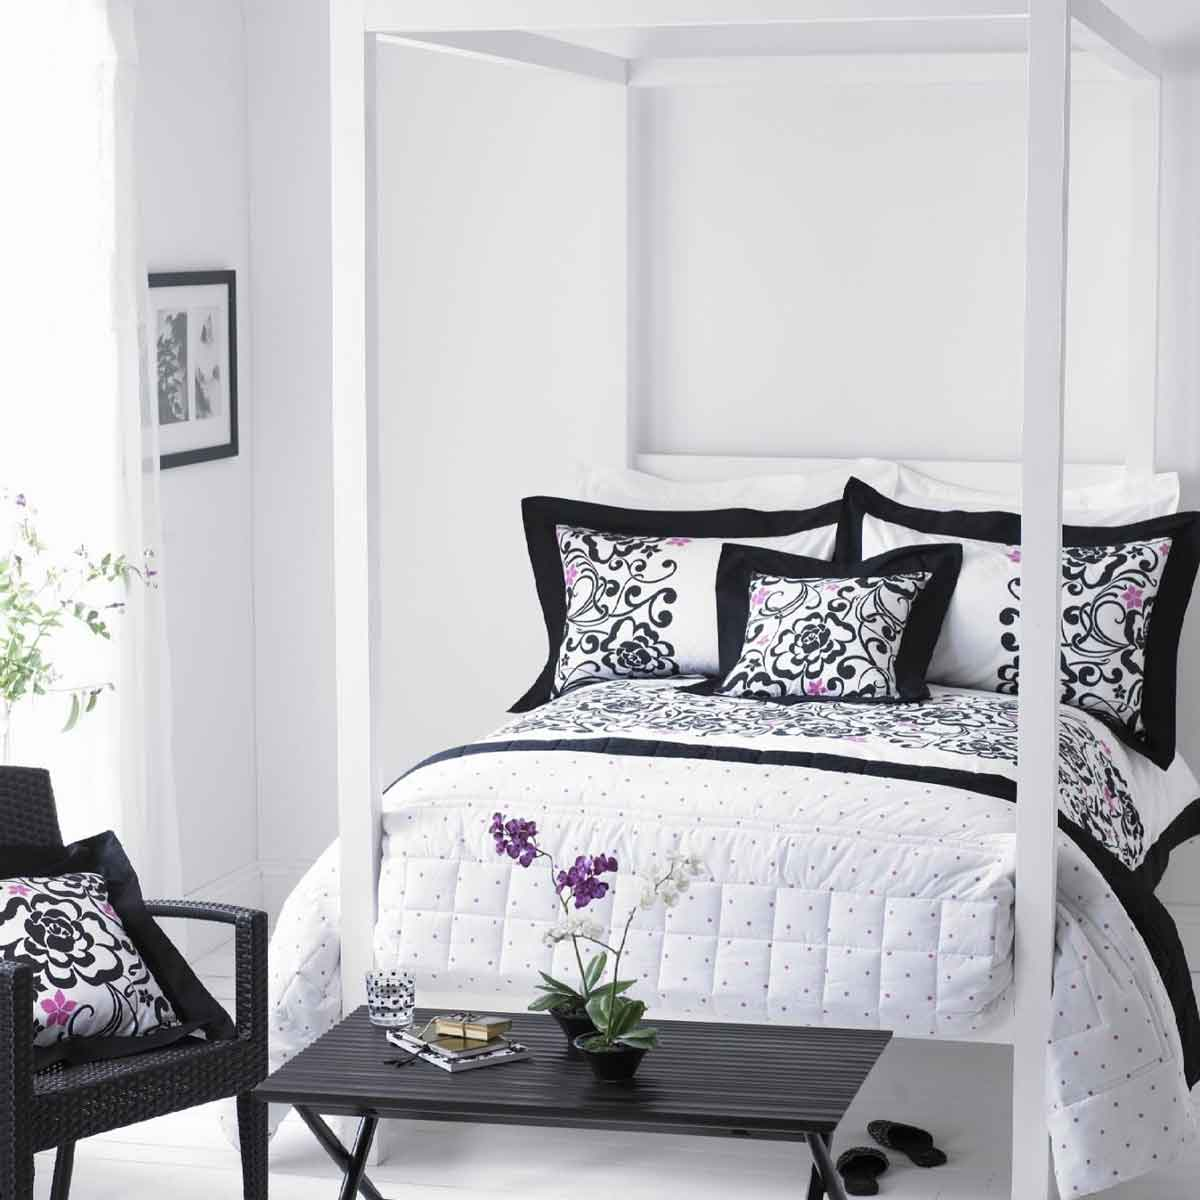 Black and white bedroom decorating ideas dream house for Black and white modern